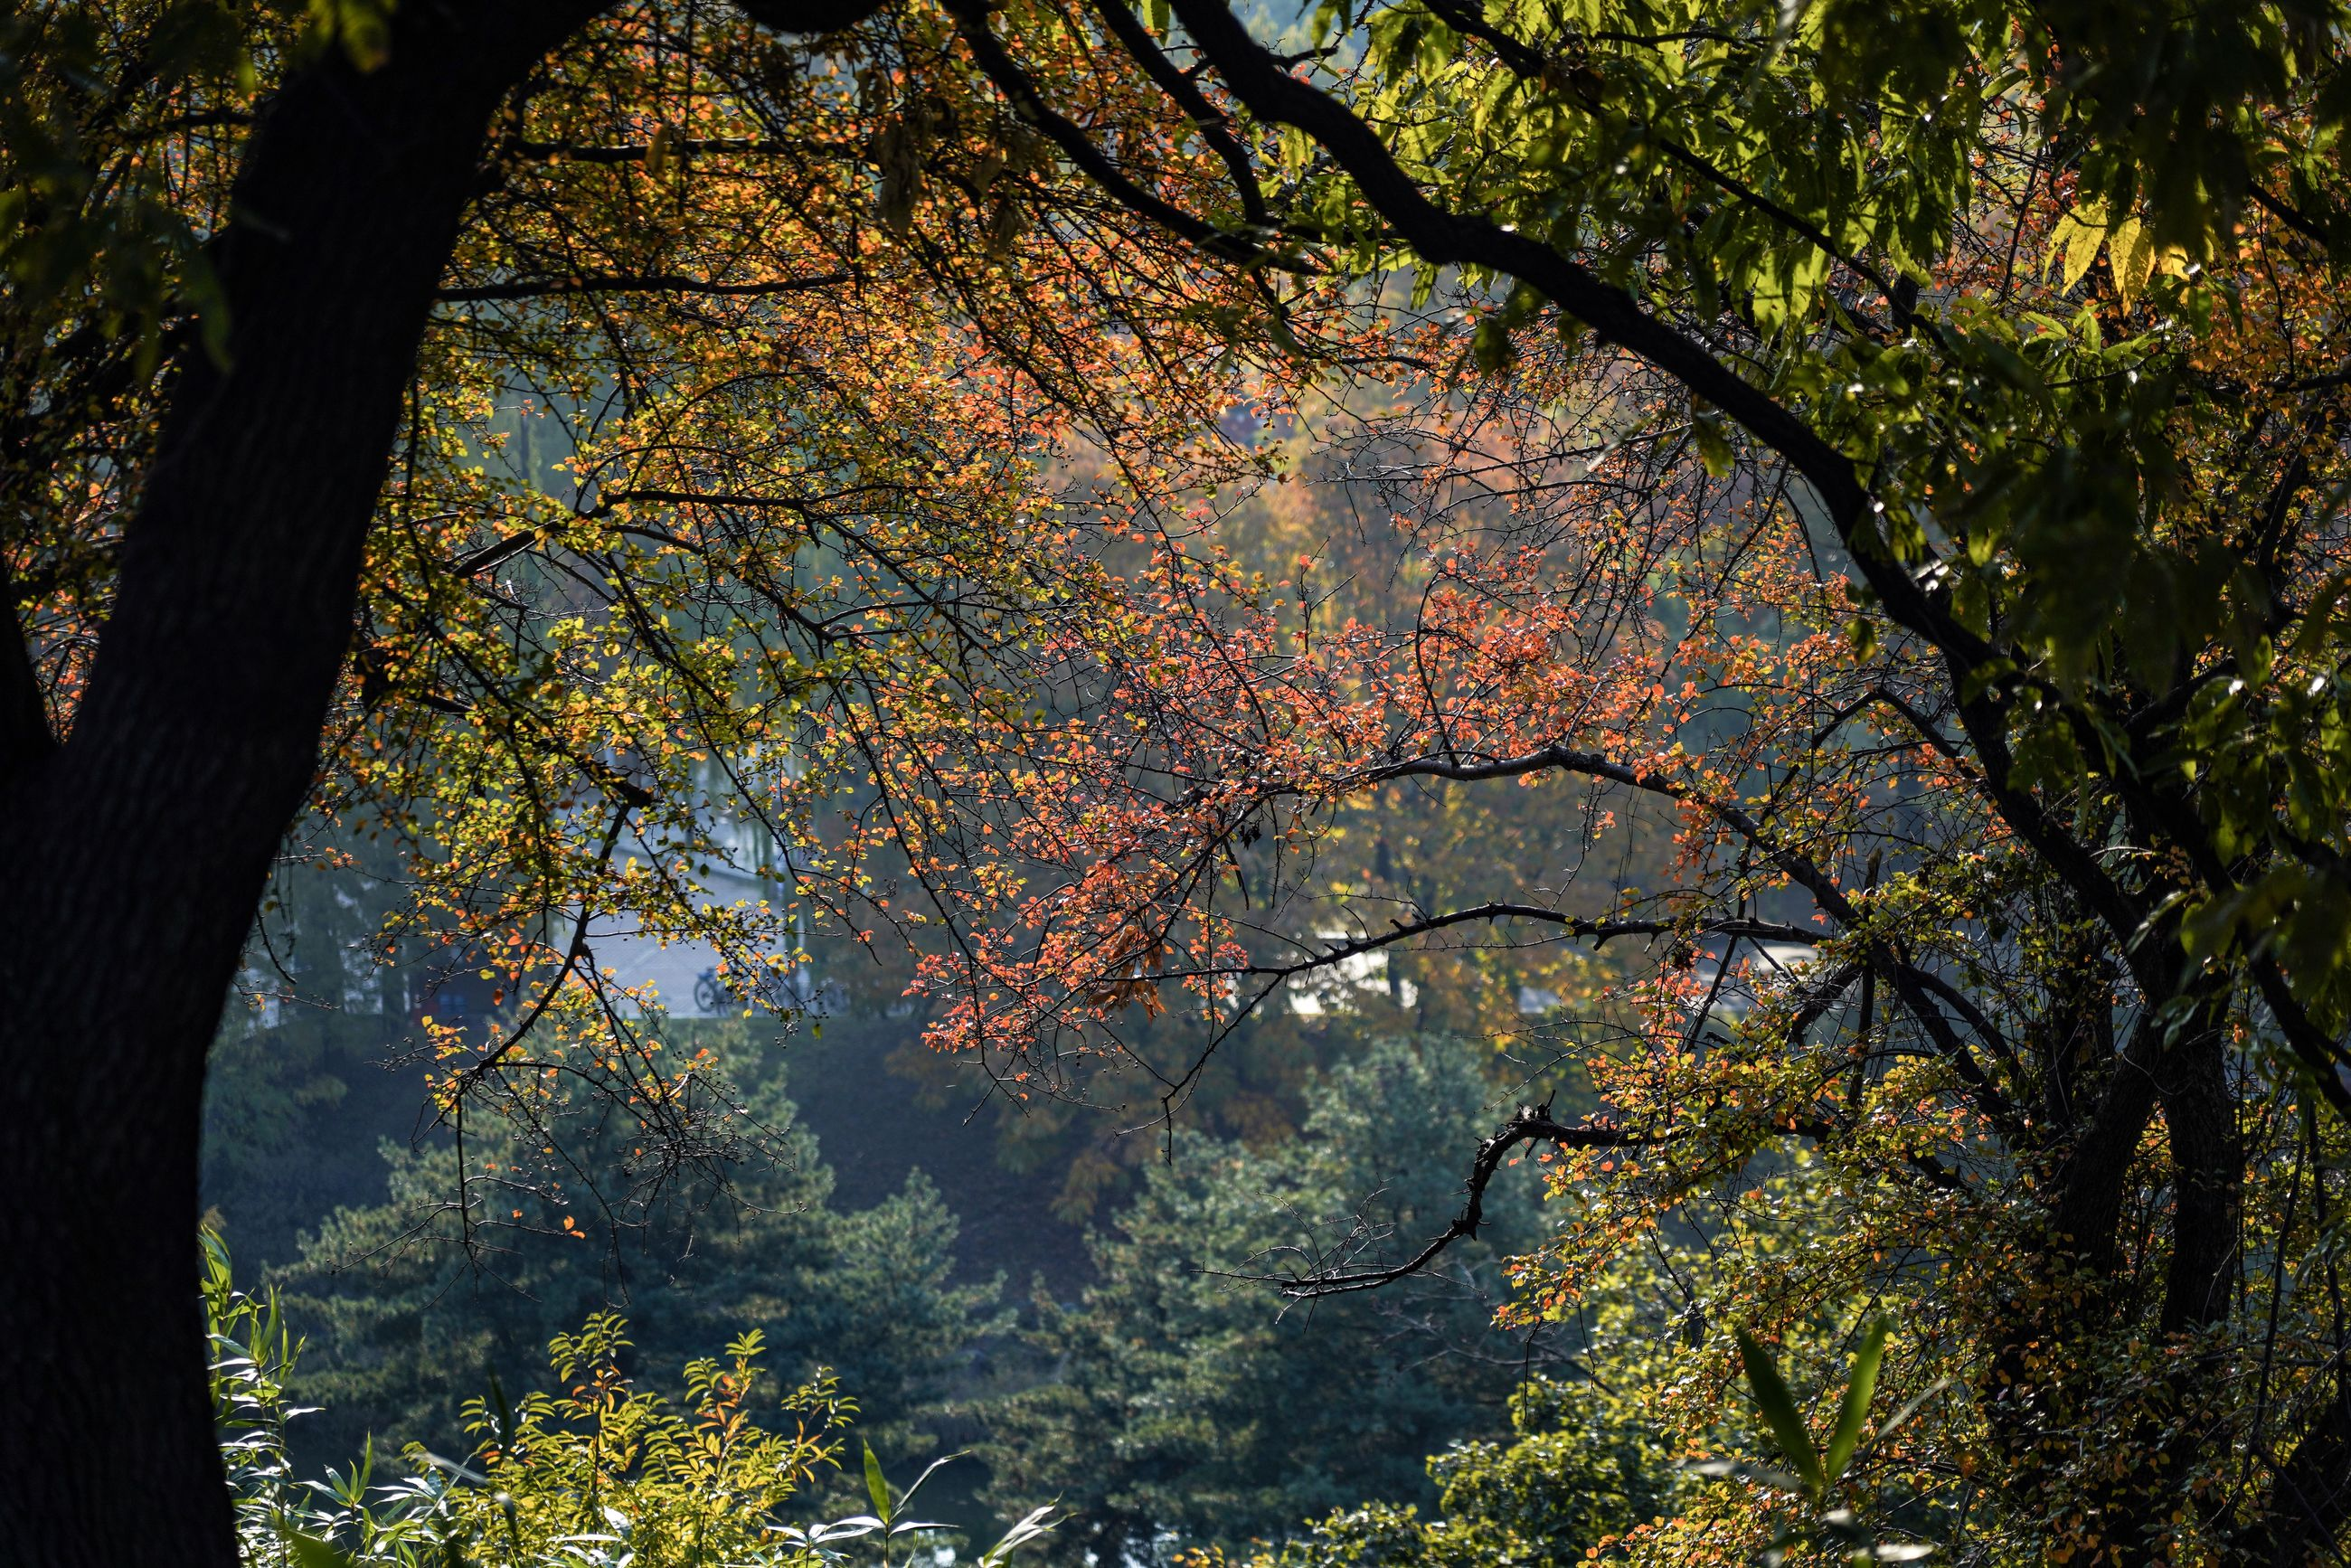 tree, plant, beauty in nature, growth, autumn, tree trunk, trunk, nature, forest, branch, tranquility, change, day, land, no people, outdoors, plant part, leaf, scenics - nature, tranquil scene, fall, natural condition, tree canopy